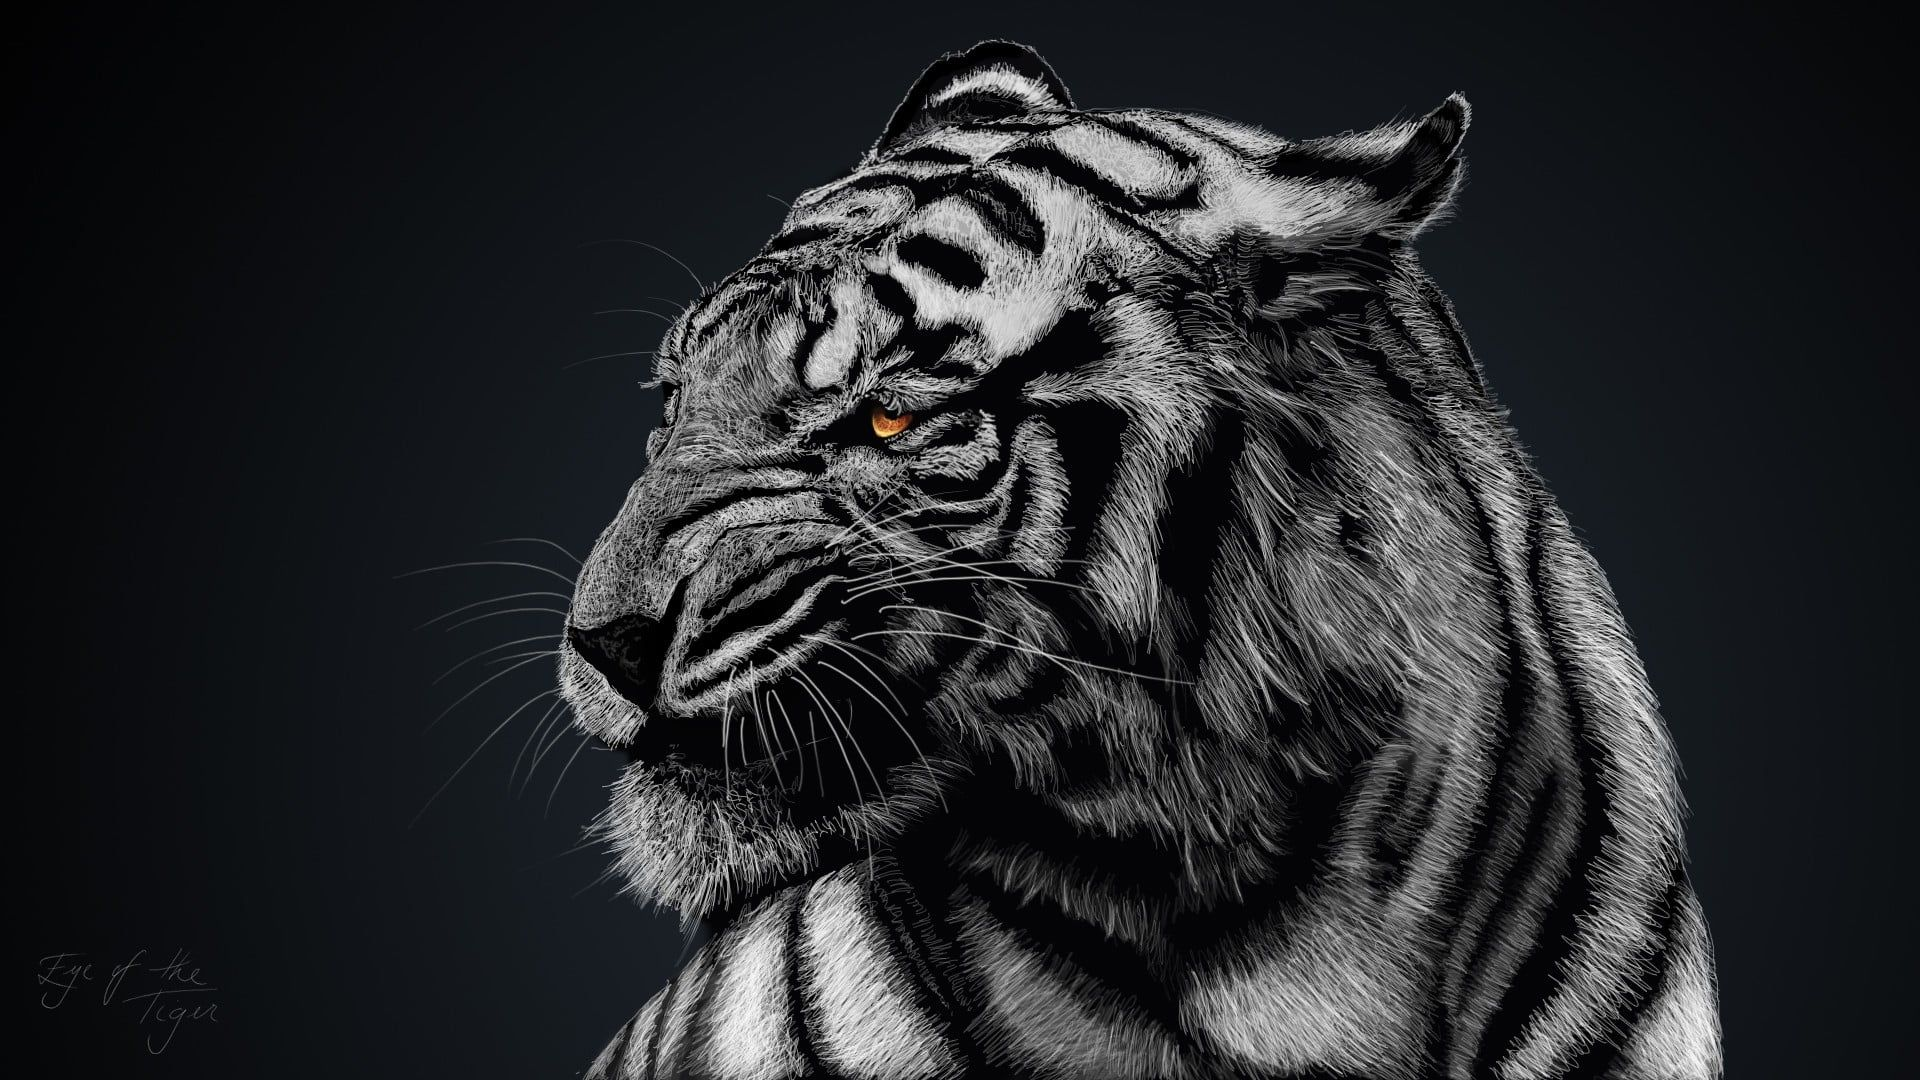 Gray And Black Tiger Greyscale Photo Of Tiger Animals Tiger White Tigers Nature 1080p Wallpaper Hdwallpaper Tiger Wallpaper Tiger Artwork Tiger Images